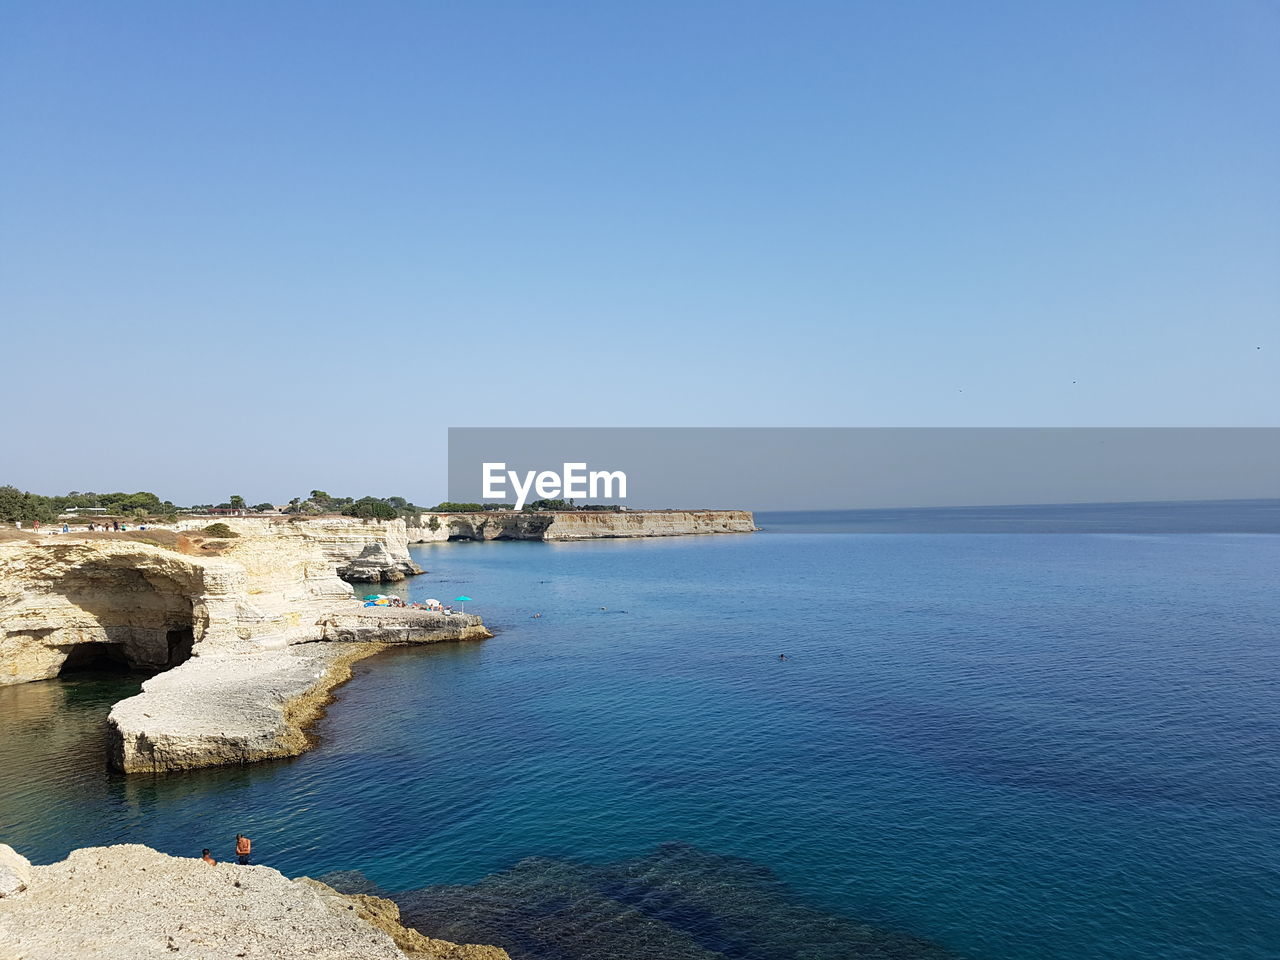 water, sea, sky, beauty in nature, scenics - nature, copy space, blue, clear sky, horizon over water, tranquil scene, tranquility, nature, idyllic, land, horizon, day, architecture, cliff, built structure